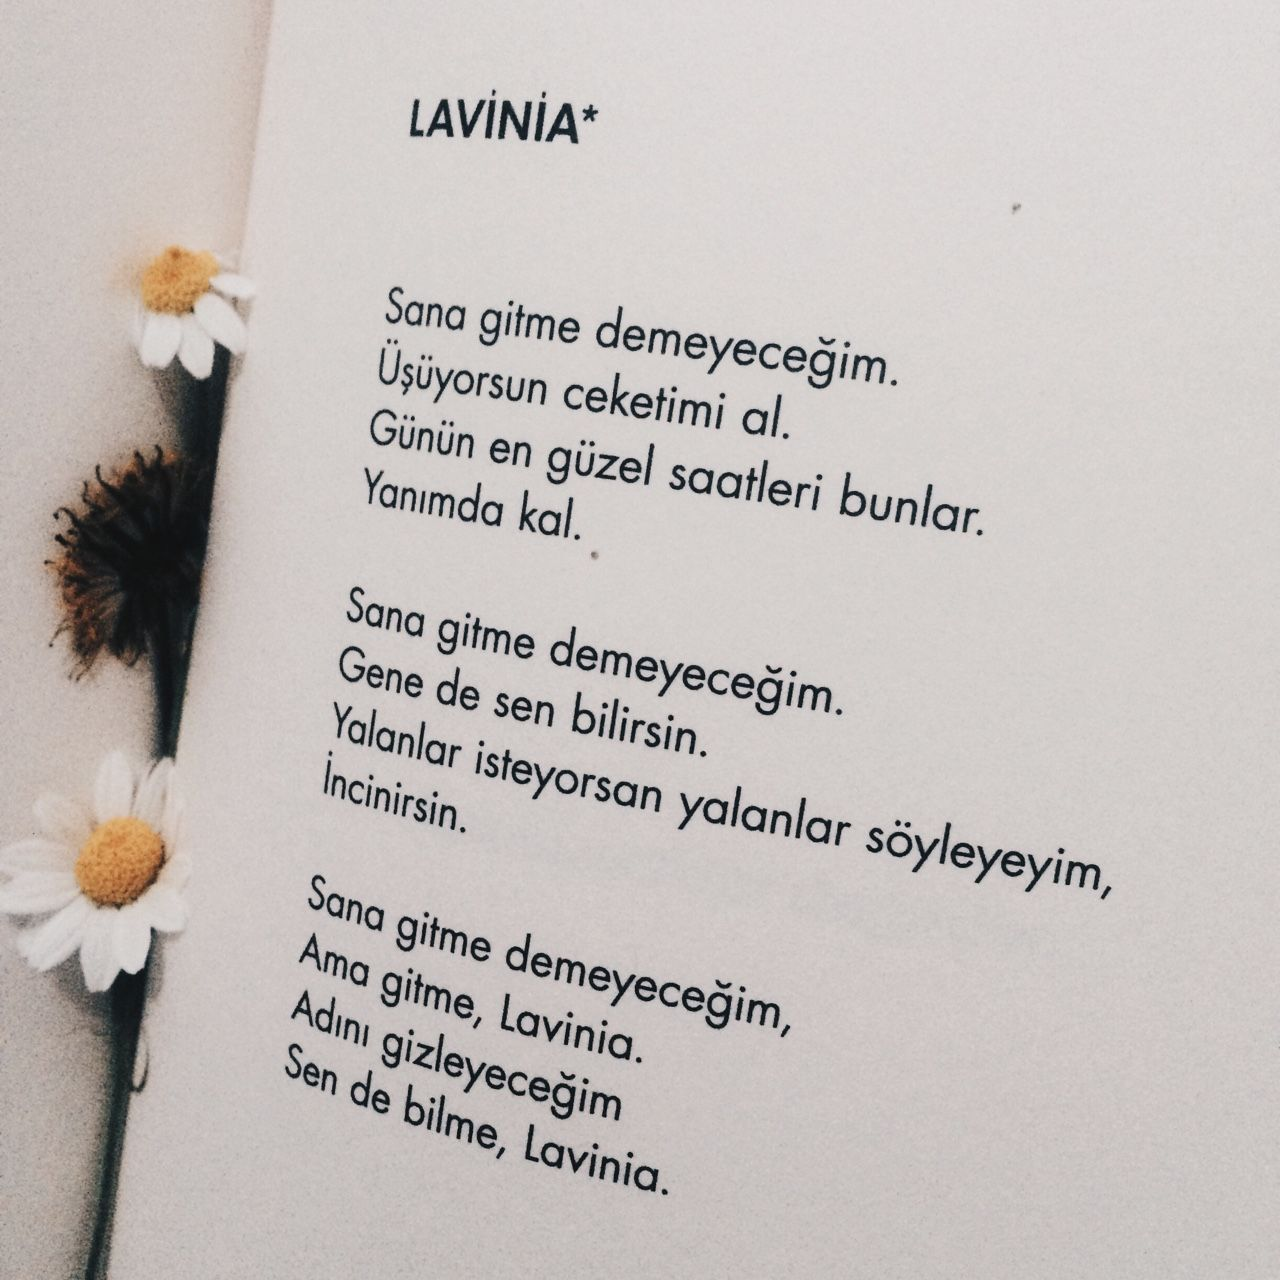 lavinia muslim The name lavinia is an american baby name in american the meaning of the name lavinia is: in classical mythology, lavinia was the daughter of king latinus and the wife of trojan hero aeneas, who named the city lavinium in her honour.